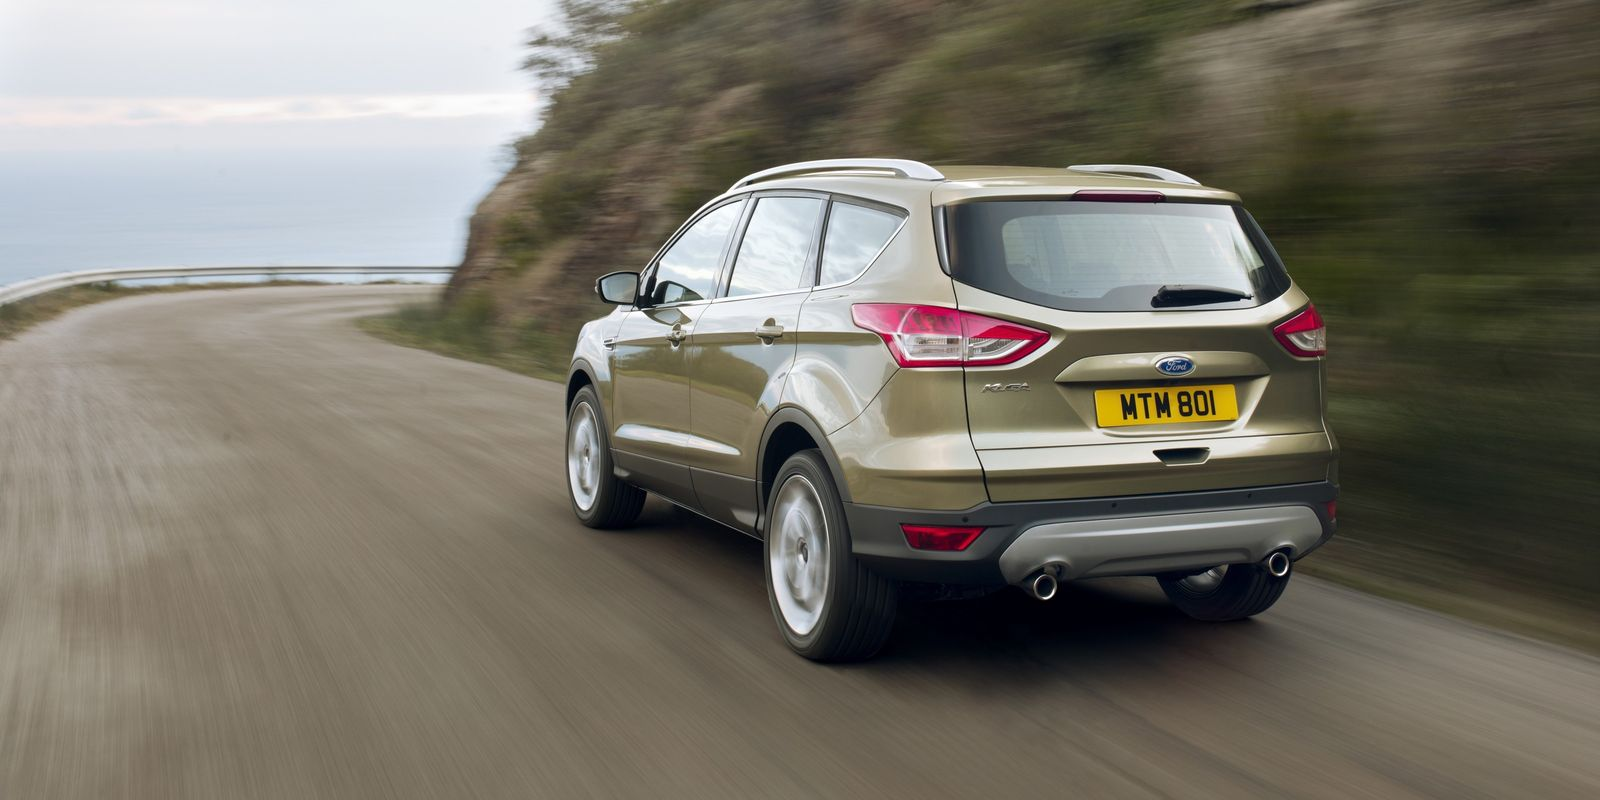 the motoring world the ford kuga has it 39 s best year ever beating 2014 by 35 and three times. Black Bedroom Furniture Sets. Home Design Ideas